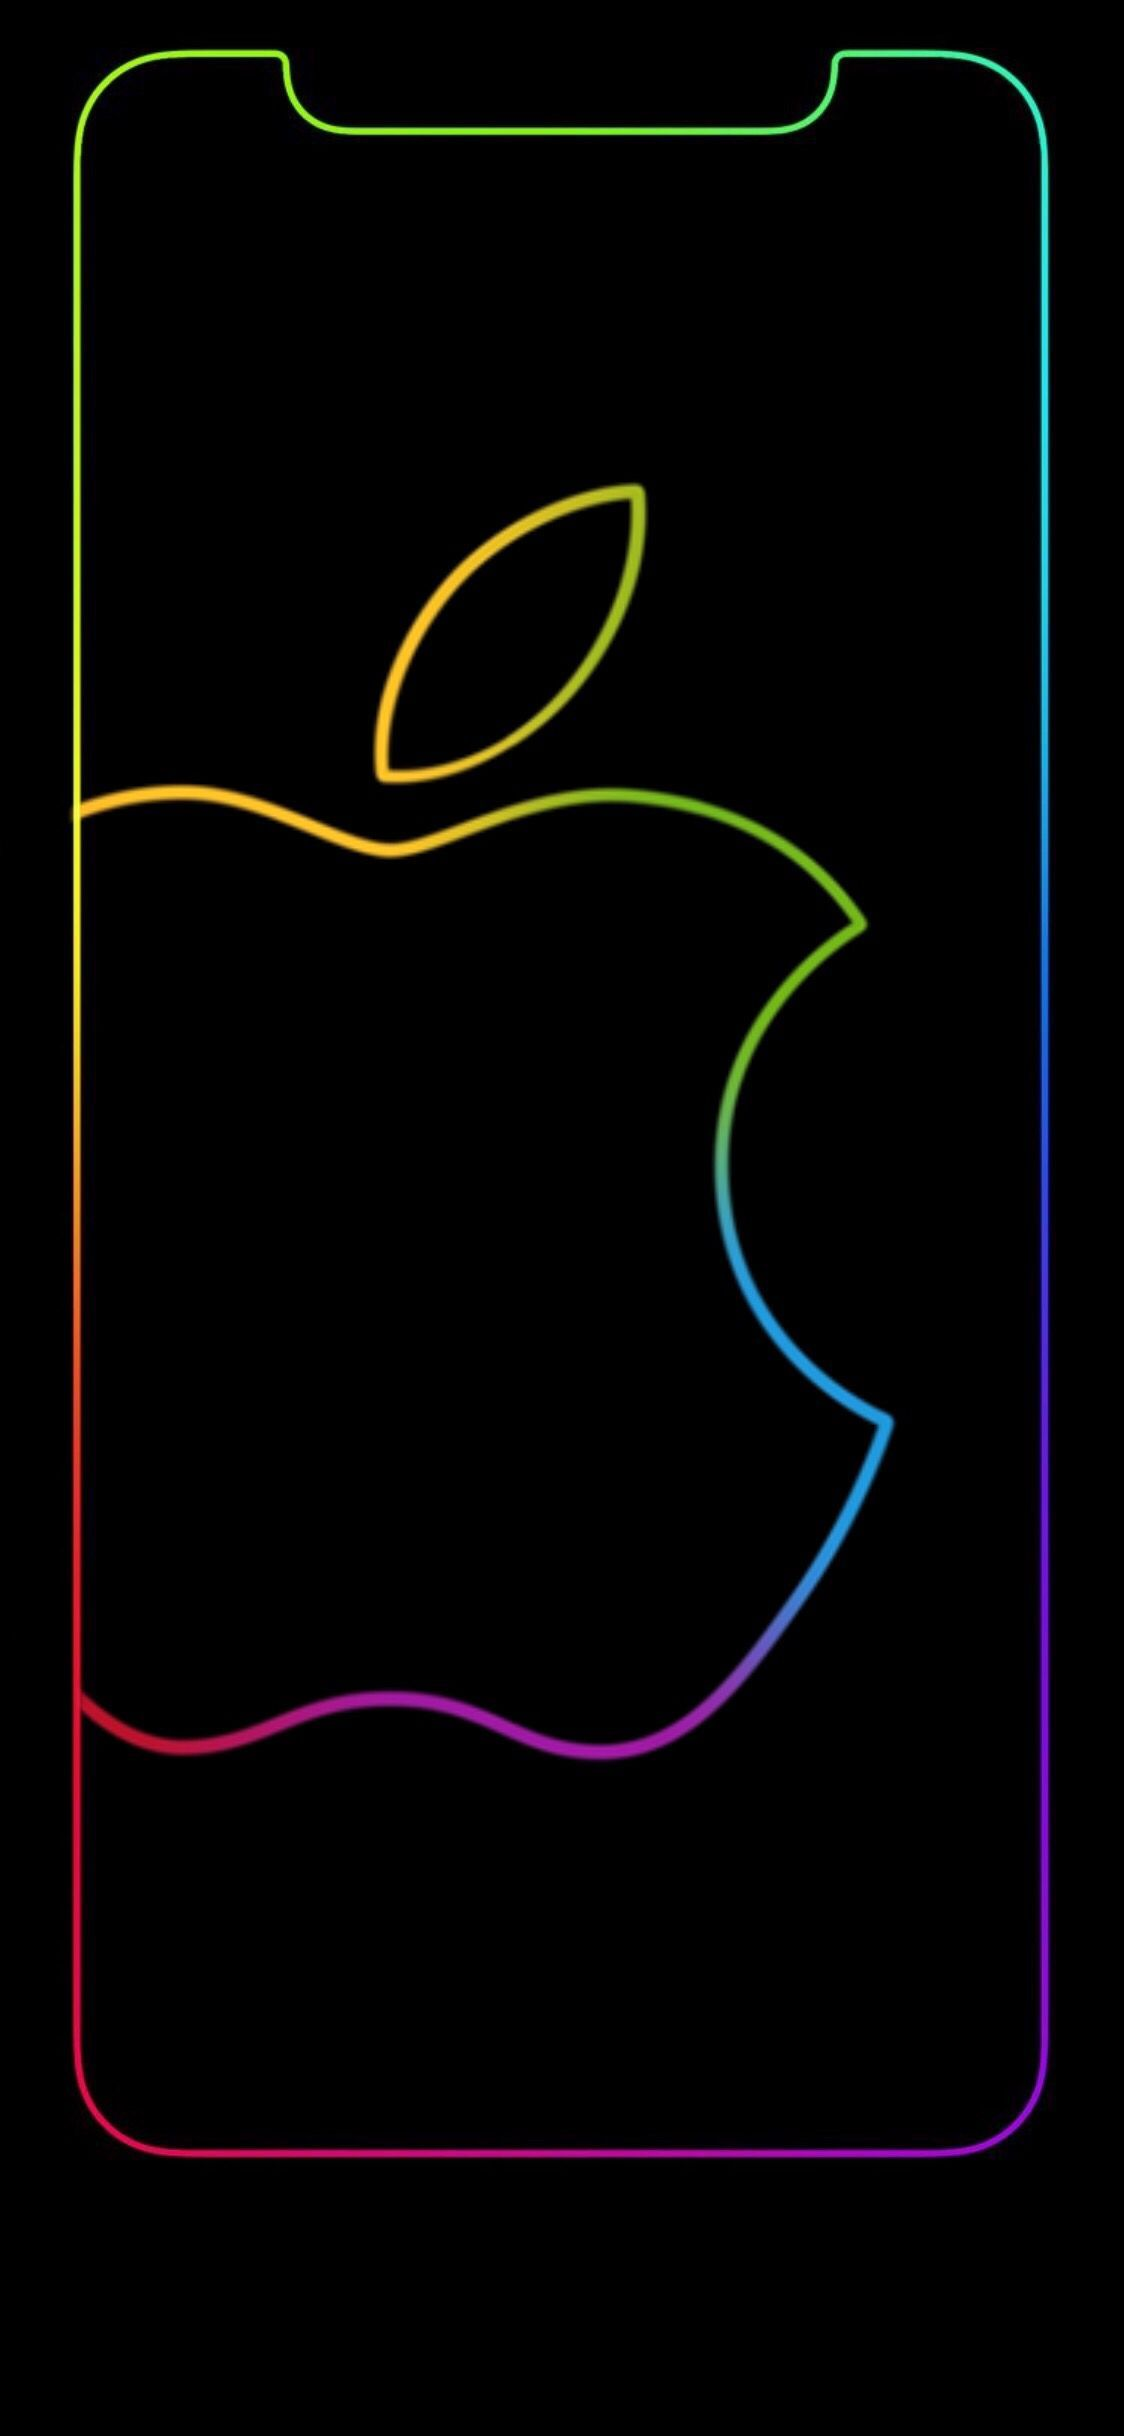 Get Most Downloaded Black Background For Smartphones 2019 Apple Logo Wallpaper Iphone Black Wallpaper Iphone Apple Iphone Wallpaper Hd